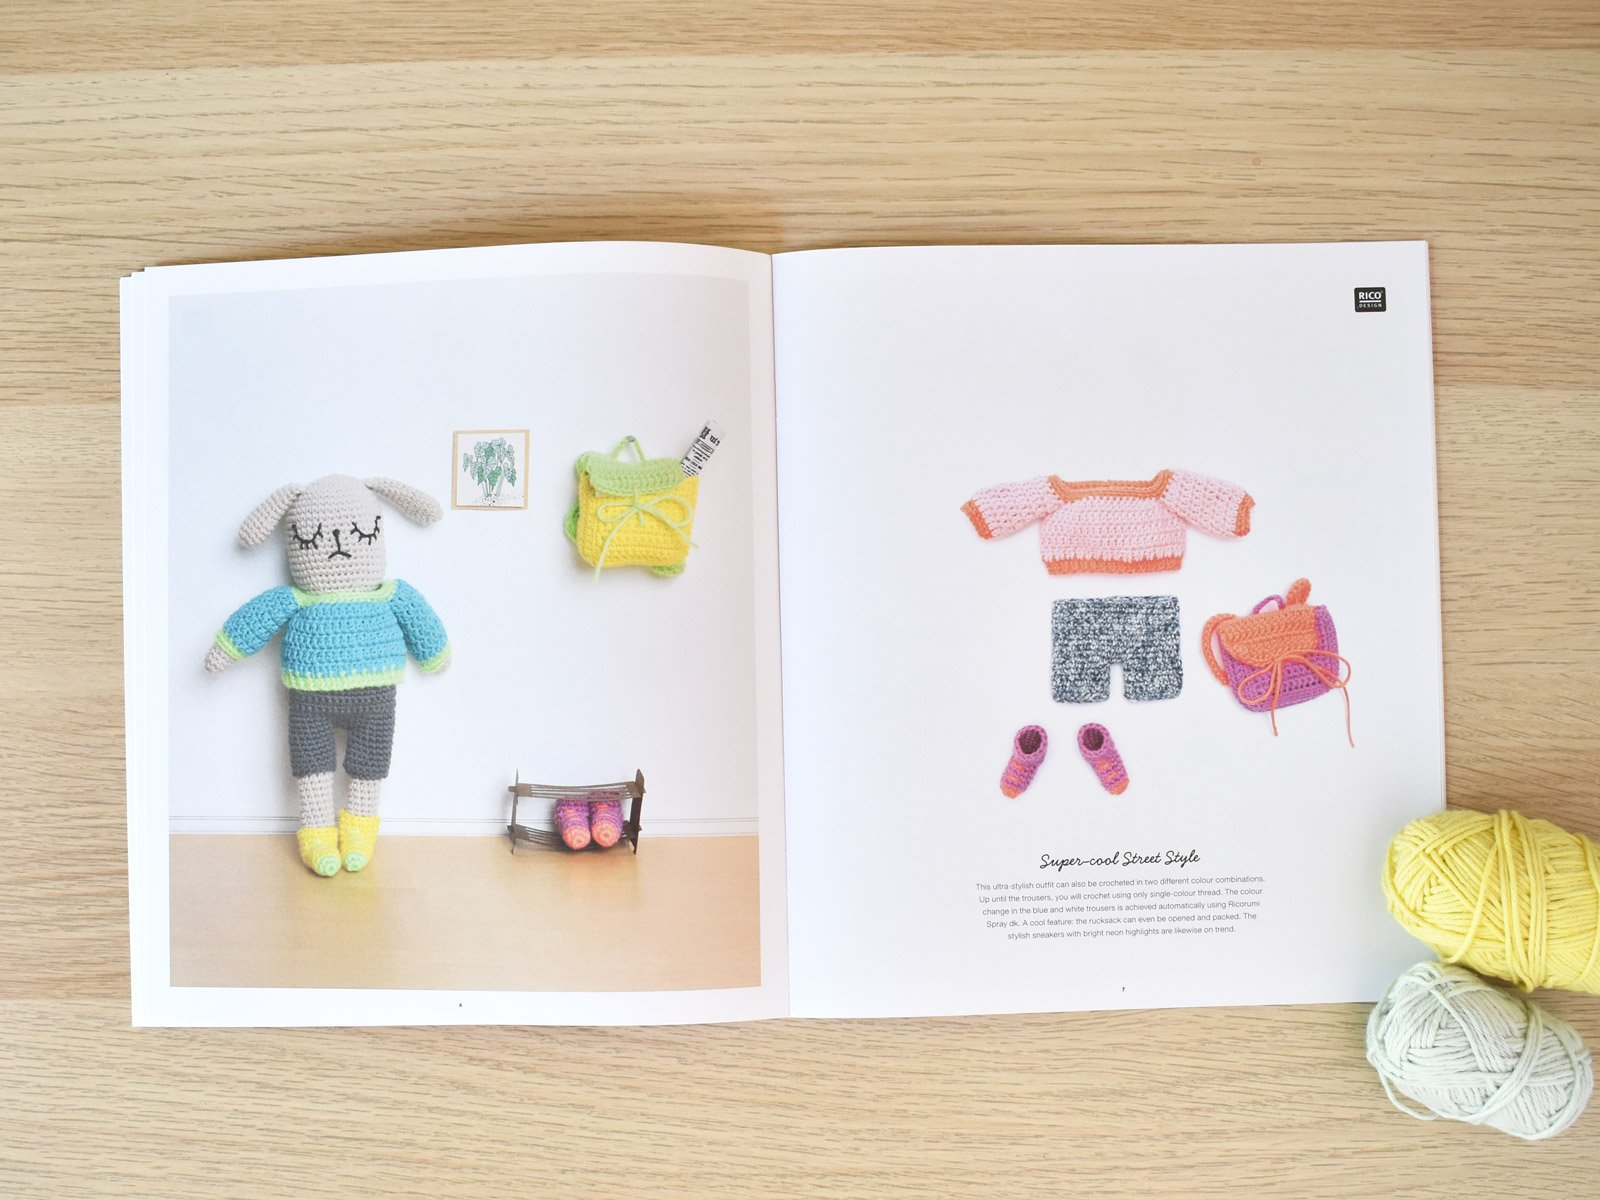 A spread from dress me animal amigurumi book with a couple balls of yarn on a wood backdrop